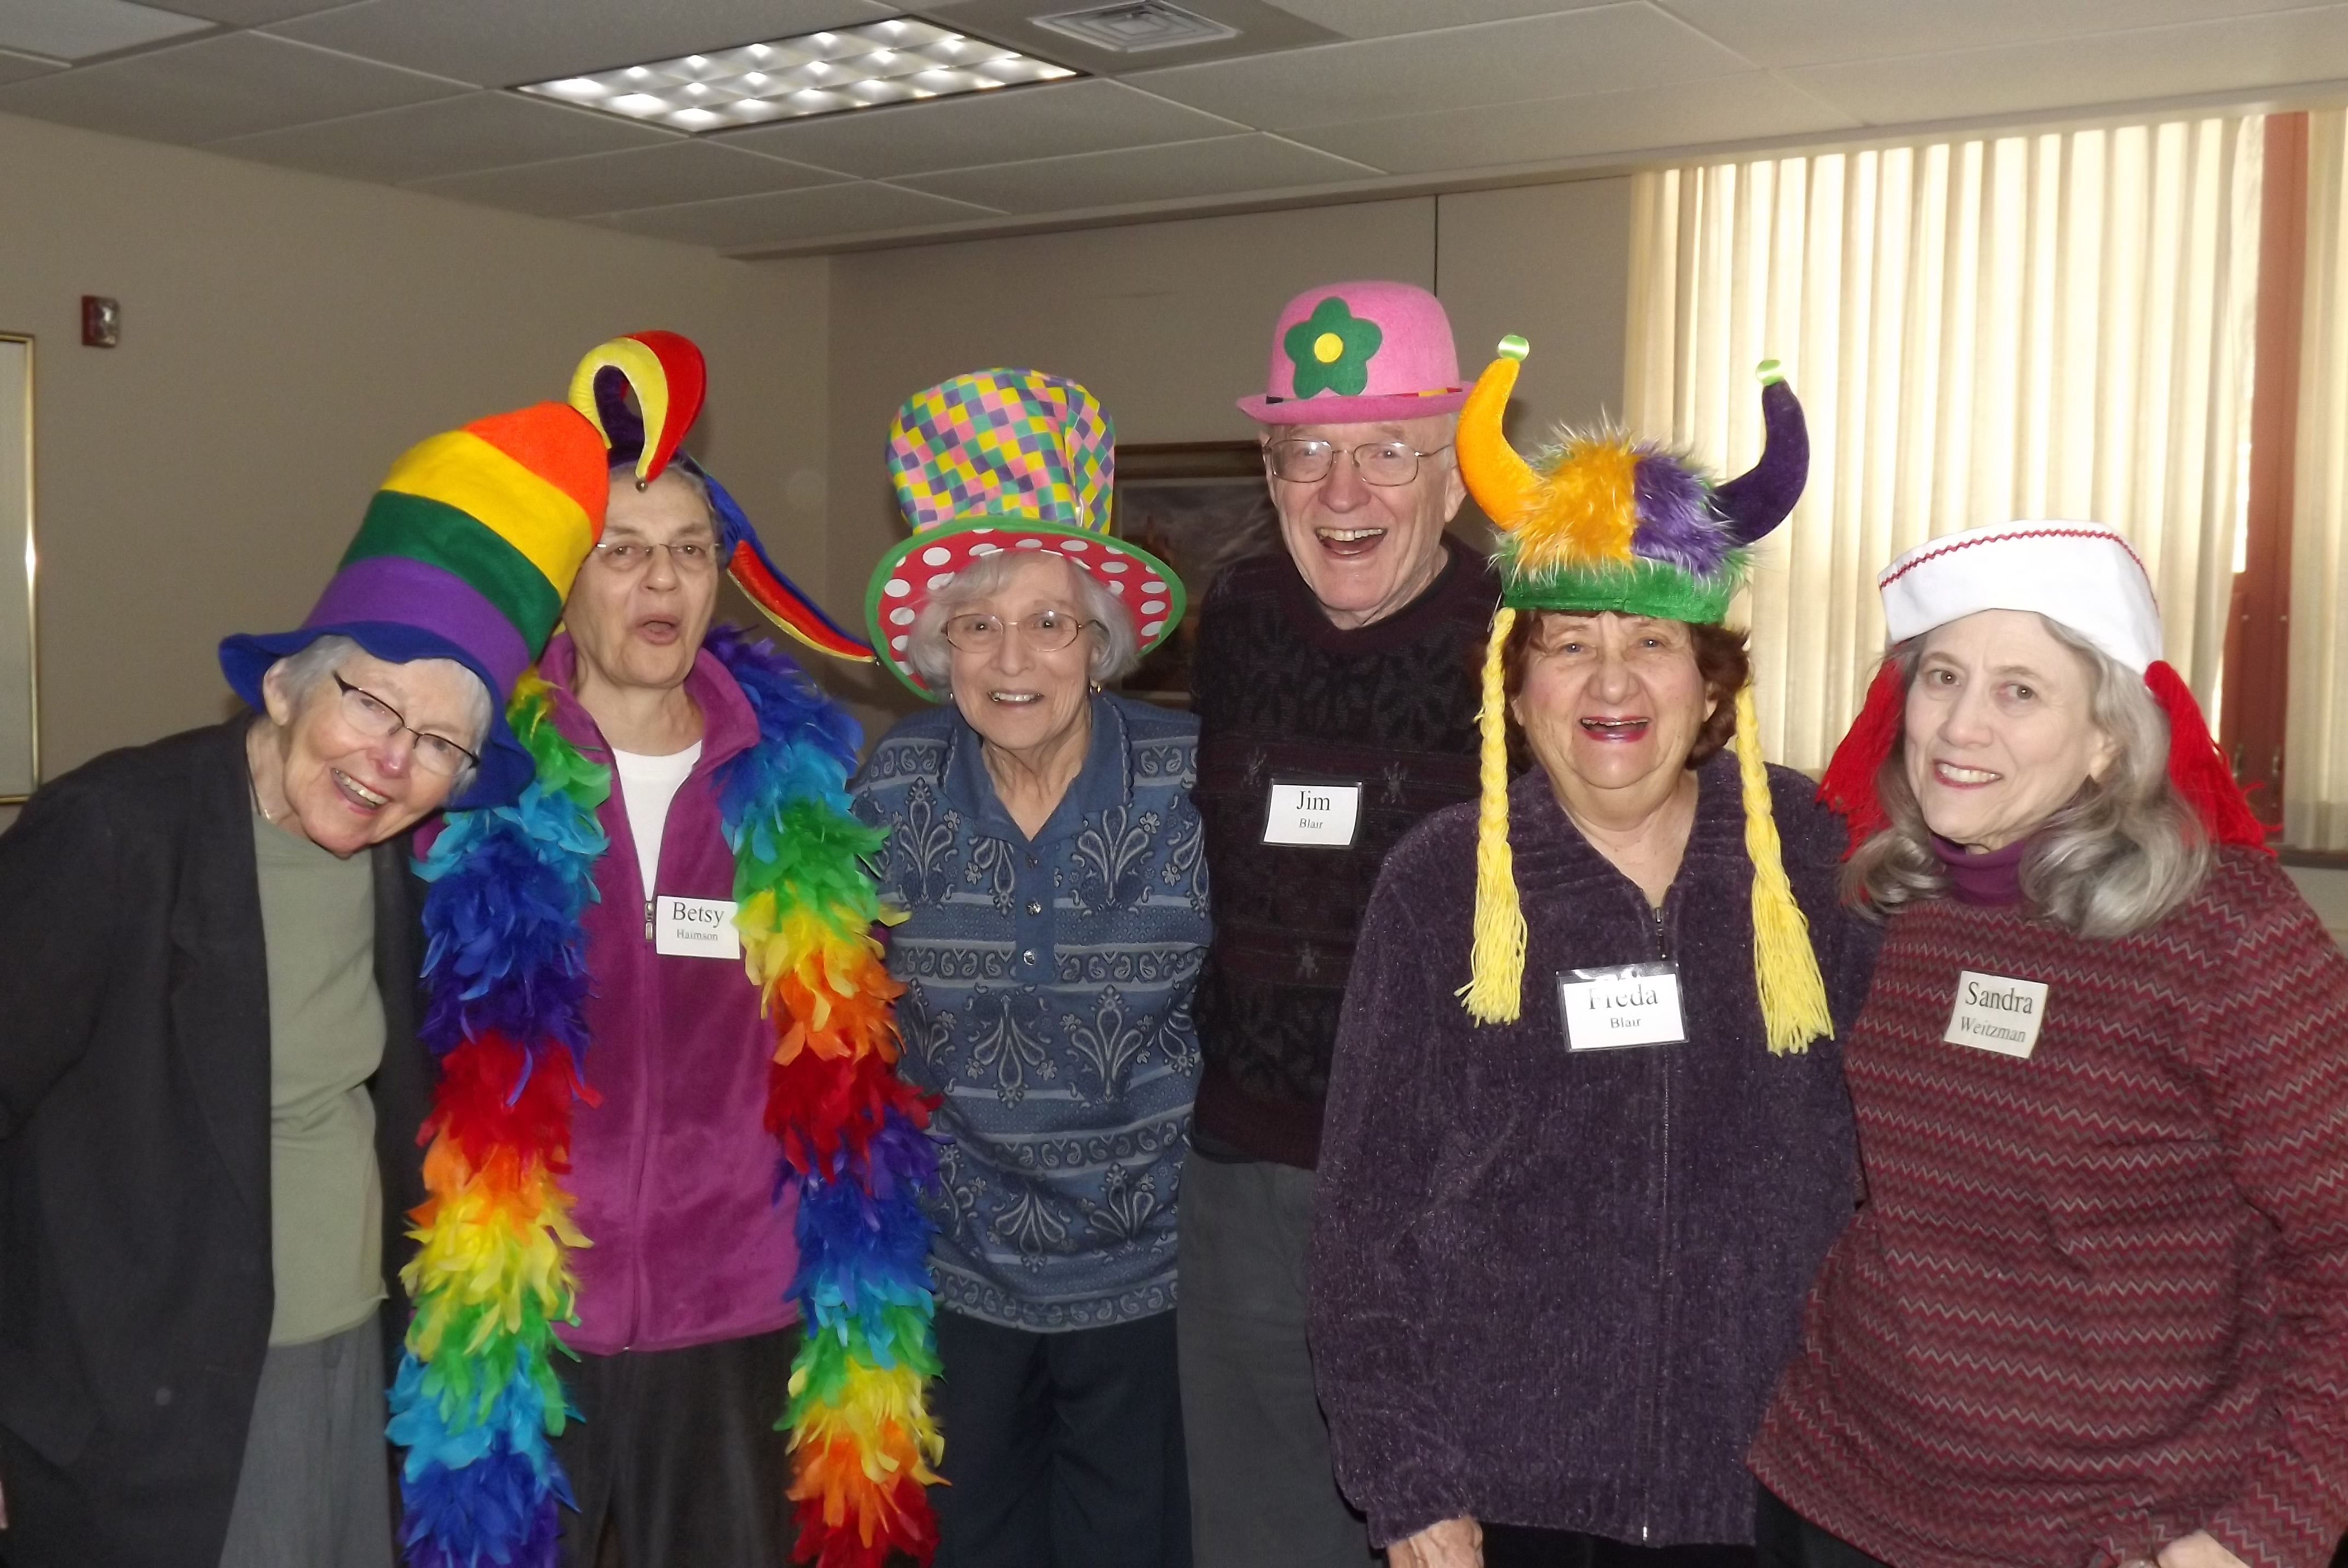 A group of our Lechayim-goers dressed up in funny hats for Purim